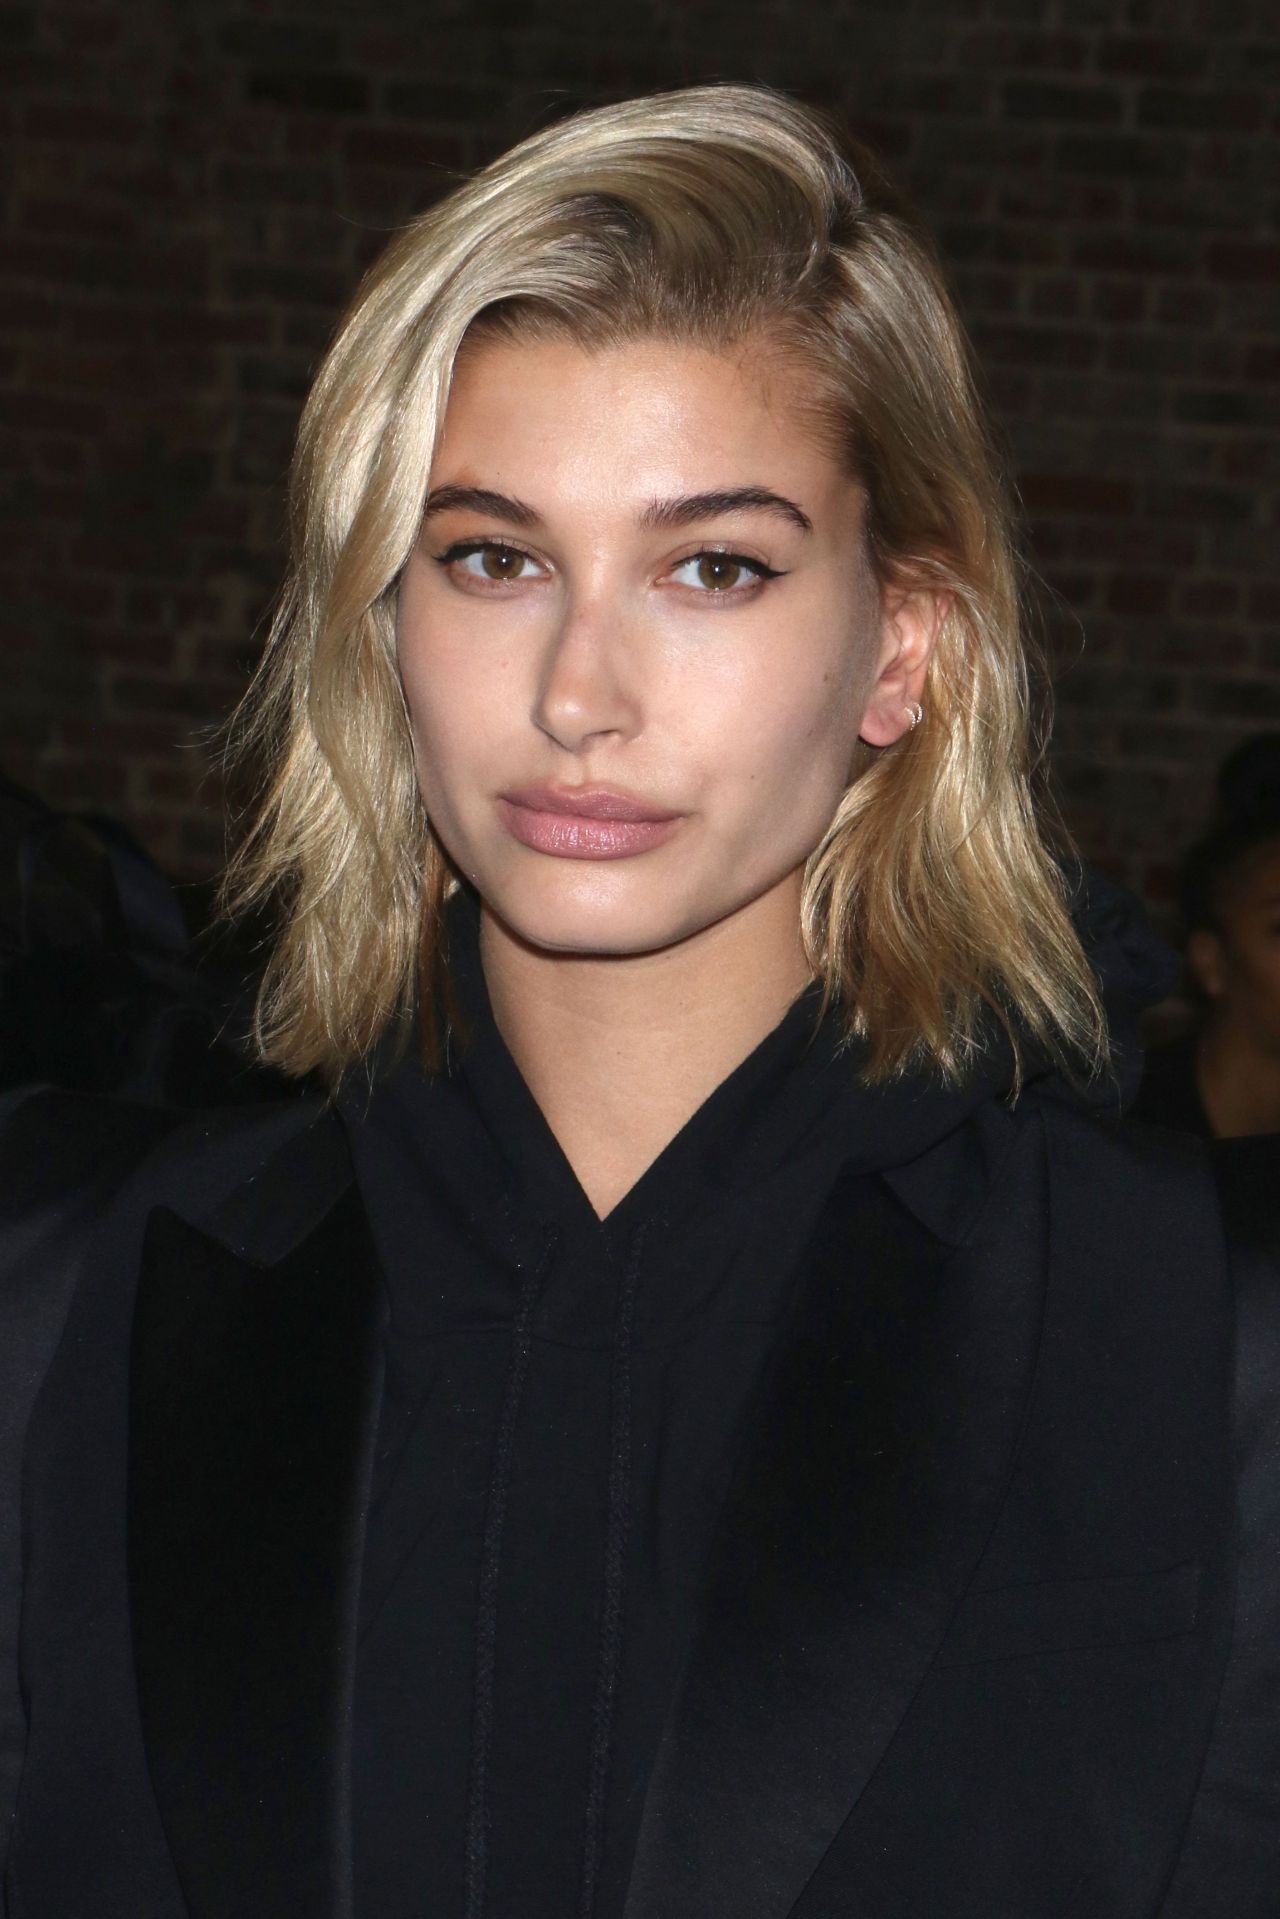 Hailey Baldwin In Fashion Magazine October 2017 Issue: Zadig And Voltaire FW18, NYFW In New York